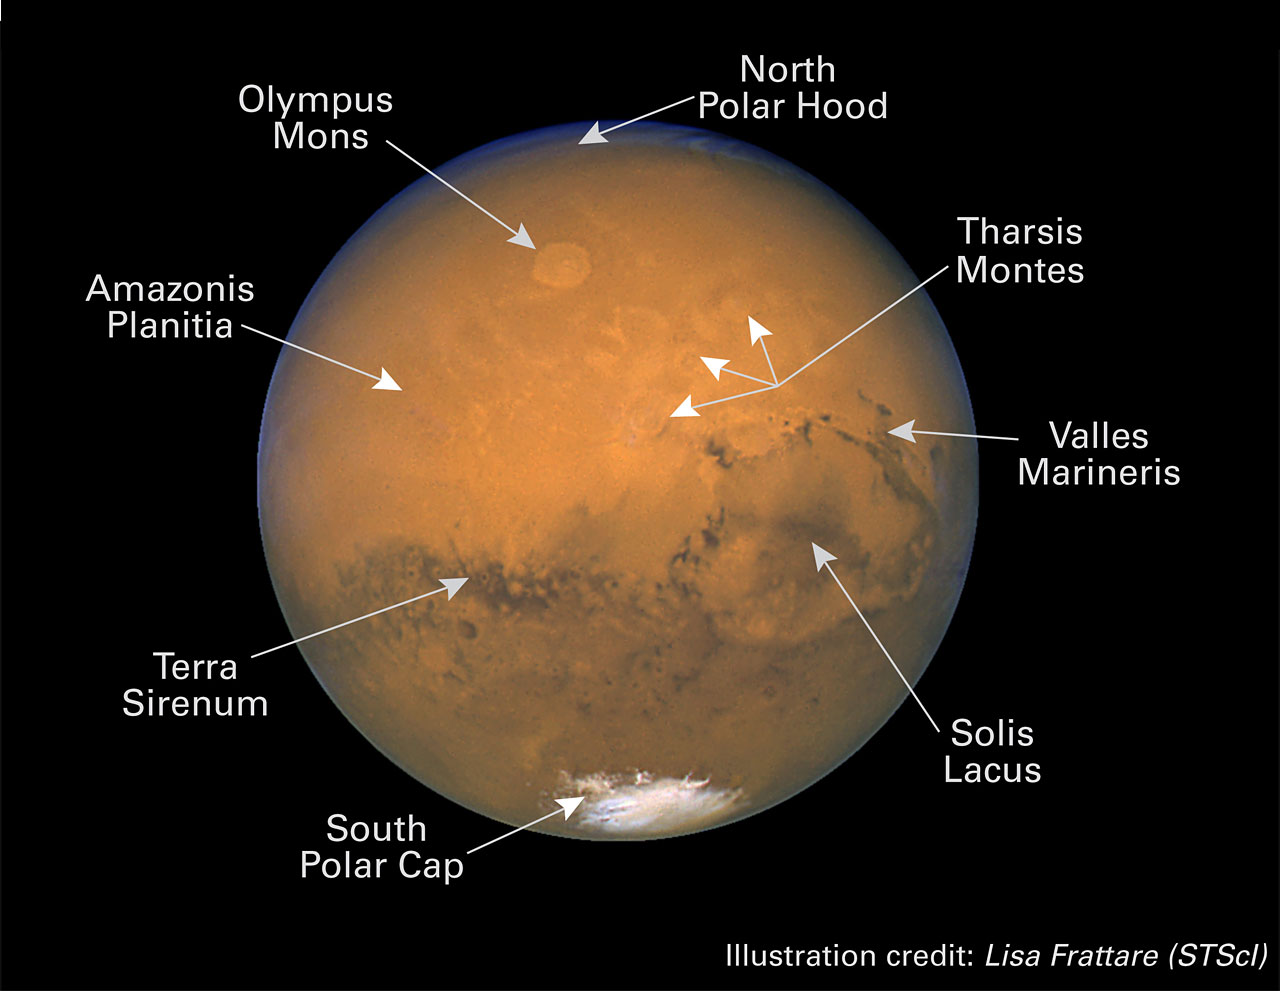 parts of a telescope diagram pioneer avh x4800bs wiring mars anotated: next view | esa/hubble